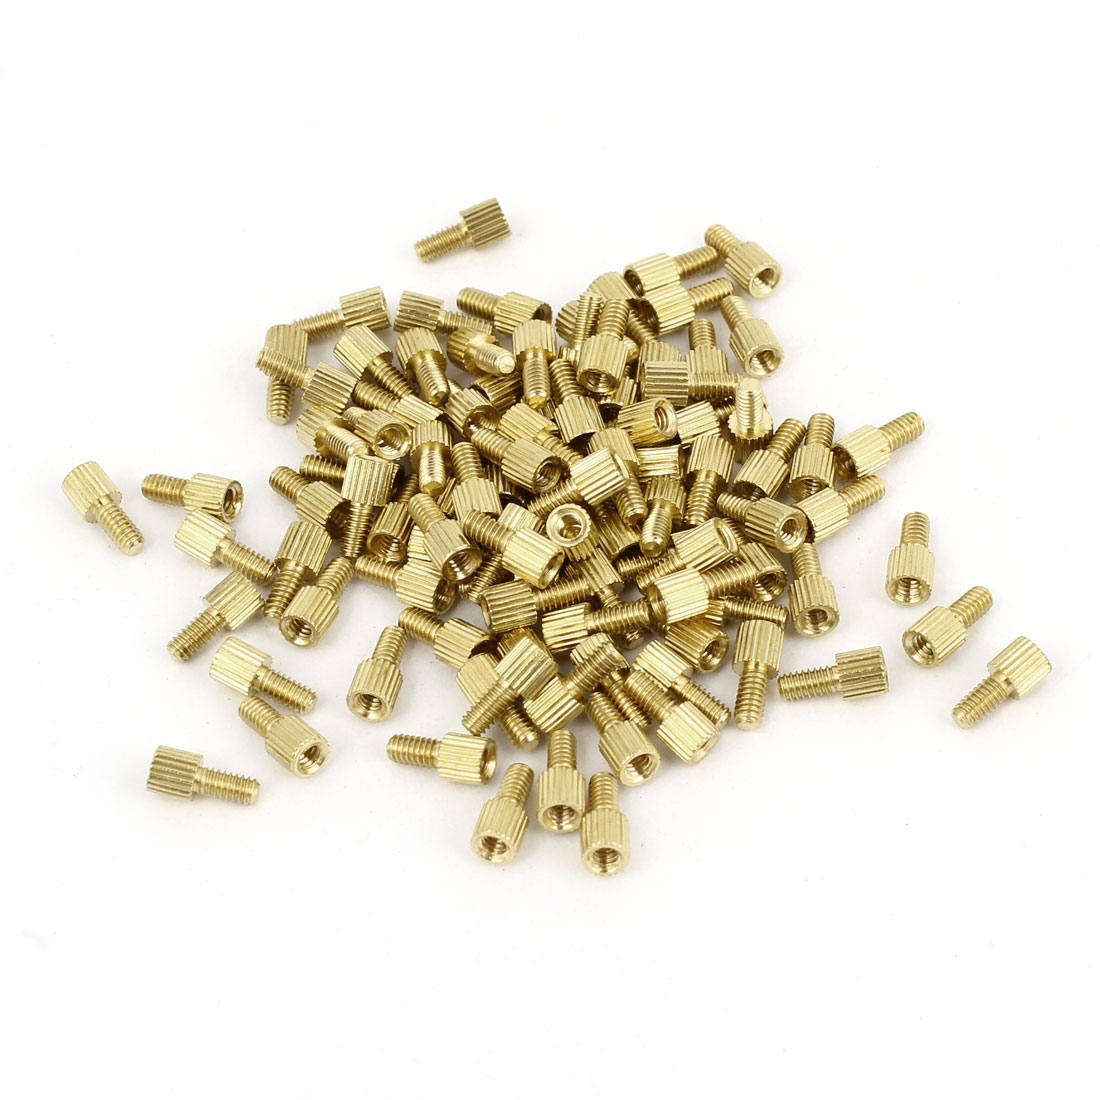 100Pcs Male to Female Thread PCB Board Brass Pillars Standoff M2x3mm